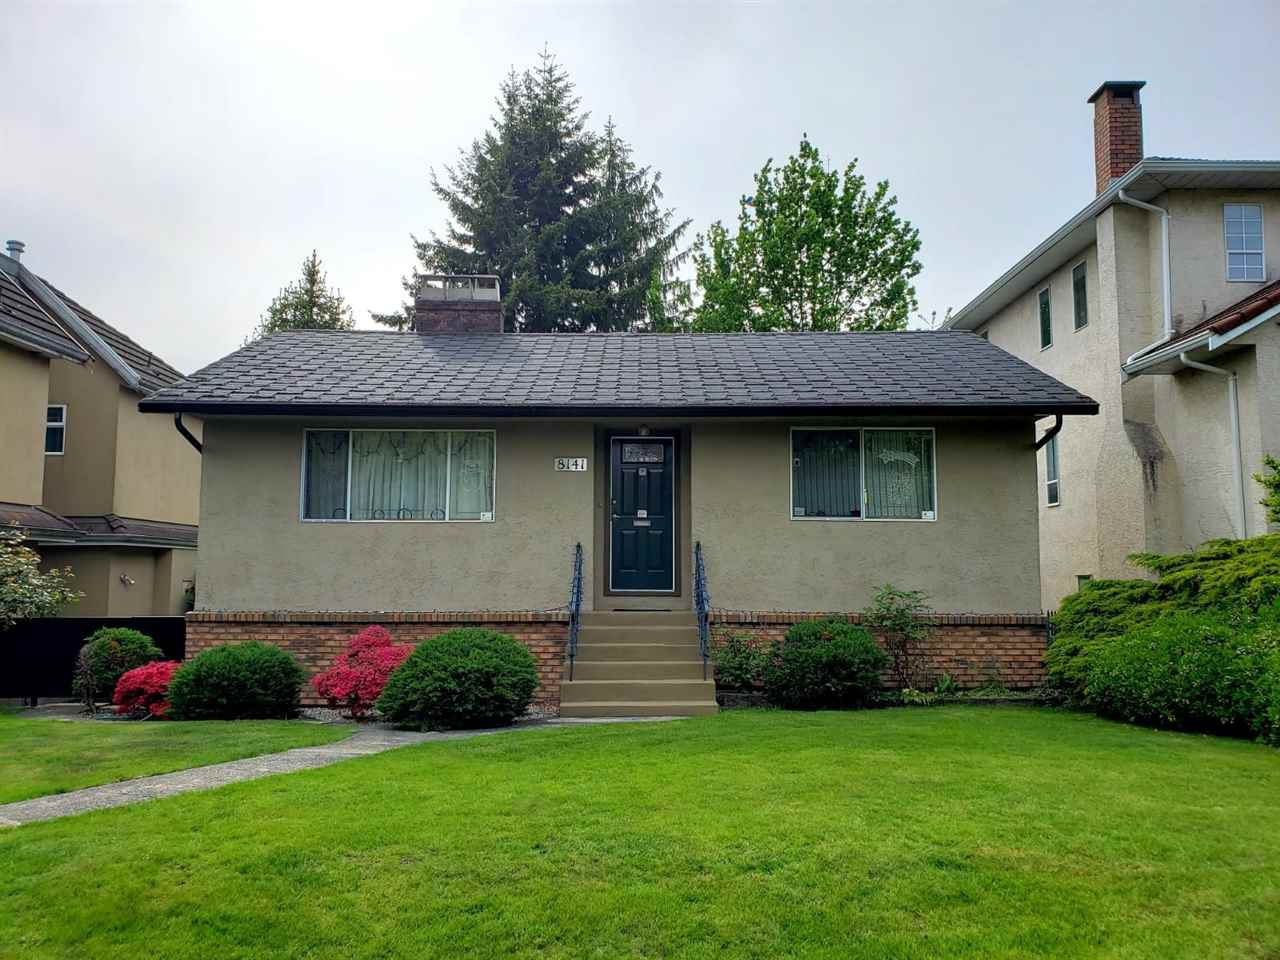 Main Photo: 8141 LAUREL Street in Vancouver: Marpole House for sale (Vancouver West)  : MLS®# R2367831